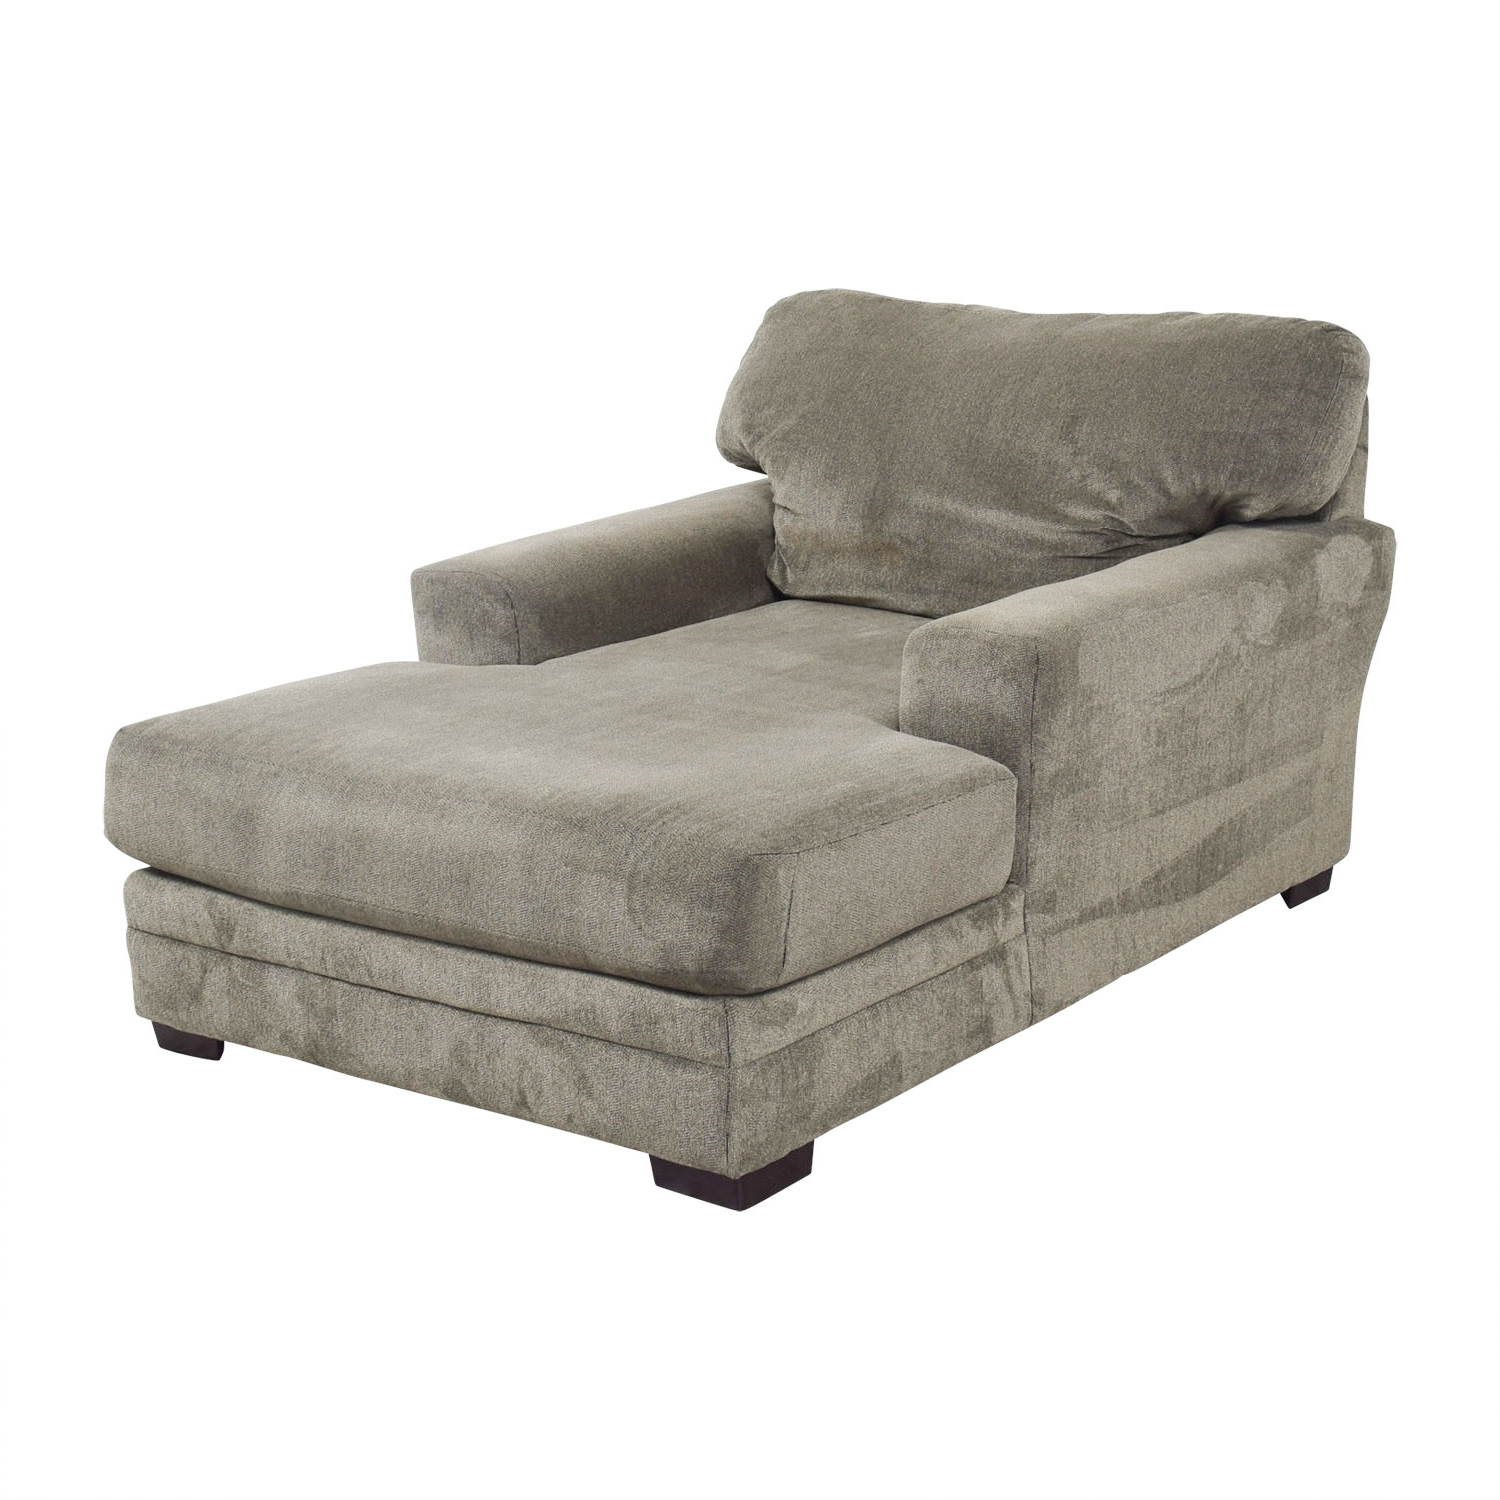 [%81% Off – Bob's Furniture Bob's Furniture Grey Chaise Lounge / Sofas Pertaining To Newest Grey Chaise Lounges|Grey Chaise Lounges Inside Latest 81% Off – Bob's Furniture Bob's Furniture Grey Chaise Lounge / Sofas|Trendy Grey Chaise Lounges In 81% Off – Bob's Furniture Bob's Furniture Grey Chaise Lounge / Sofas|Fashionable 81% Off – Bob's Furniture Bob's Furniture Grey Chaise Lounge / Sofas With Regard To Grey Chaise Lounges%] (View 15 of 15)